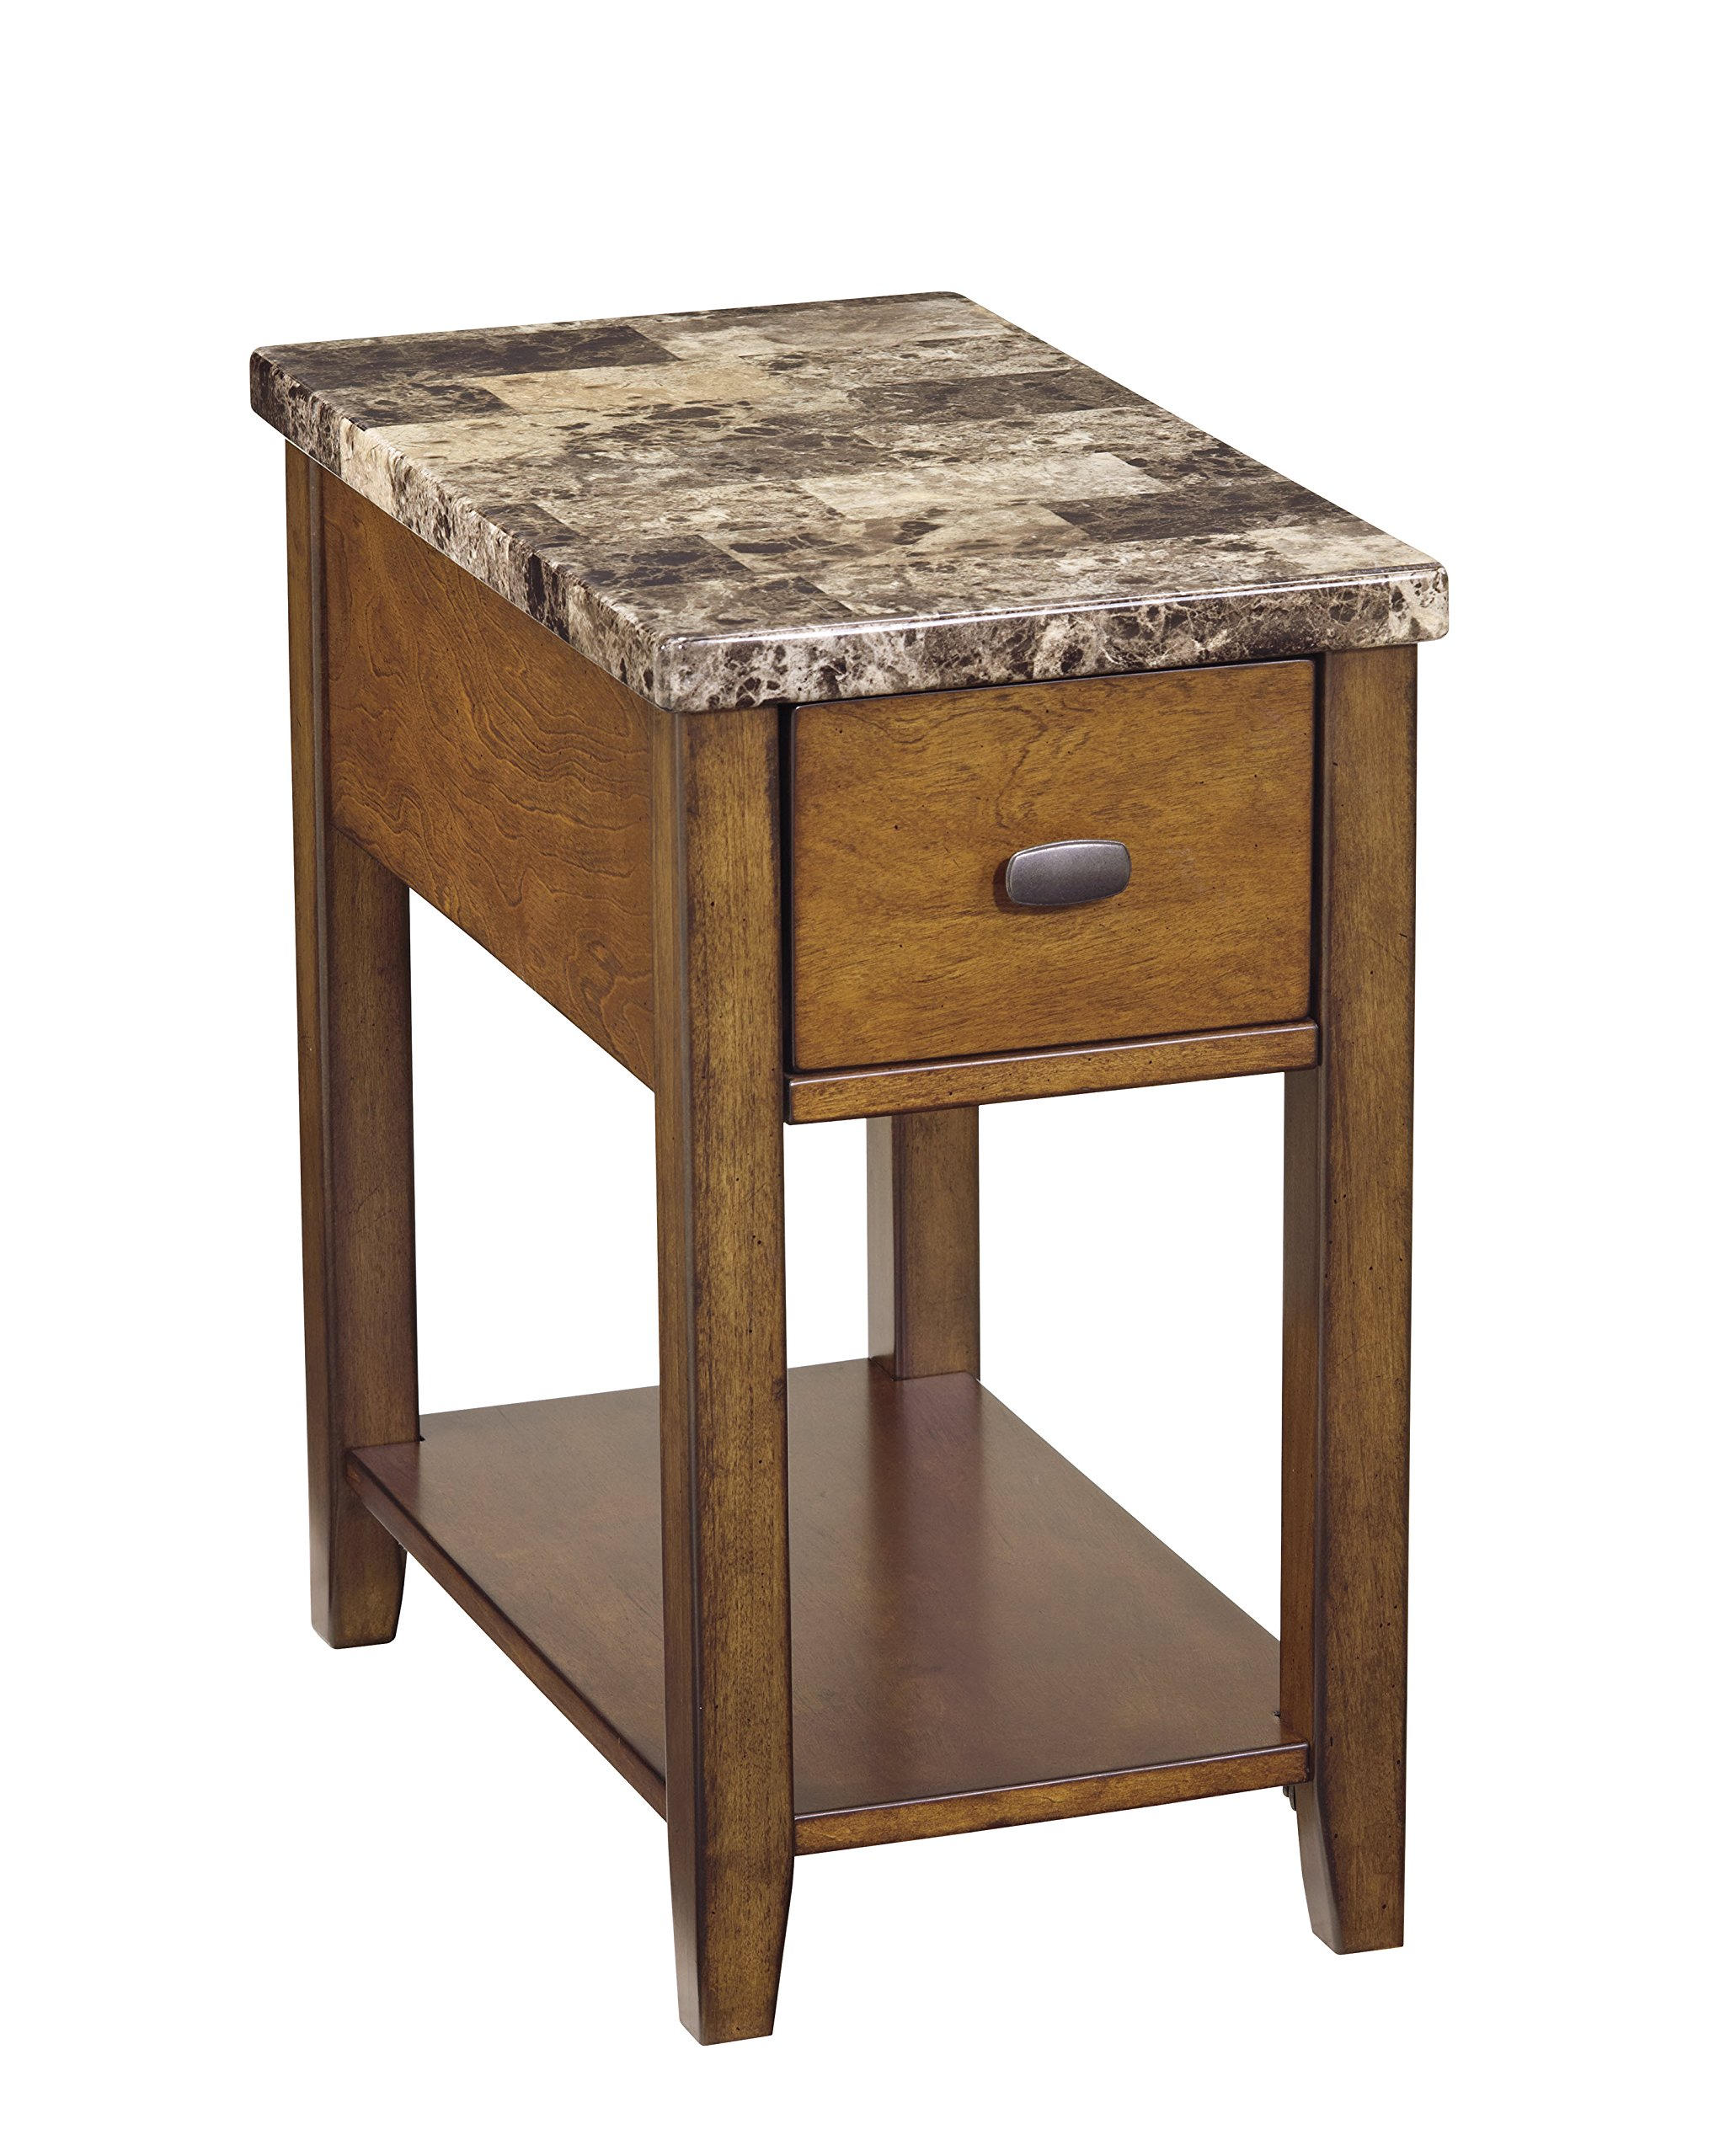 marble top end tables Marble Top End Table: Amazon.com marble top end tables